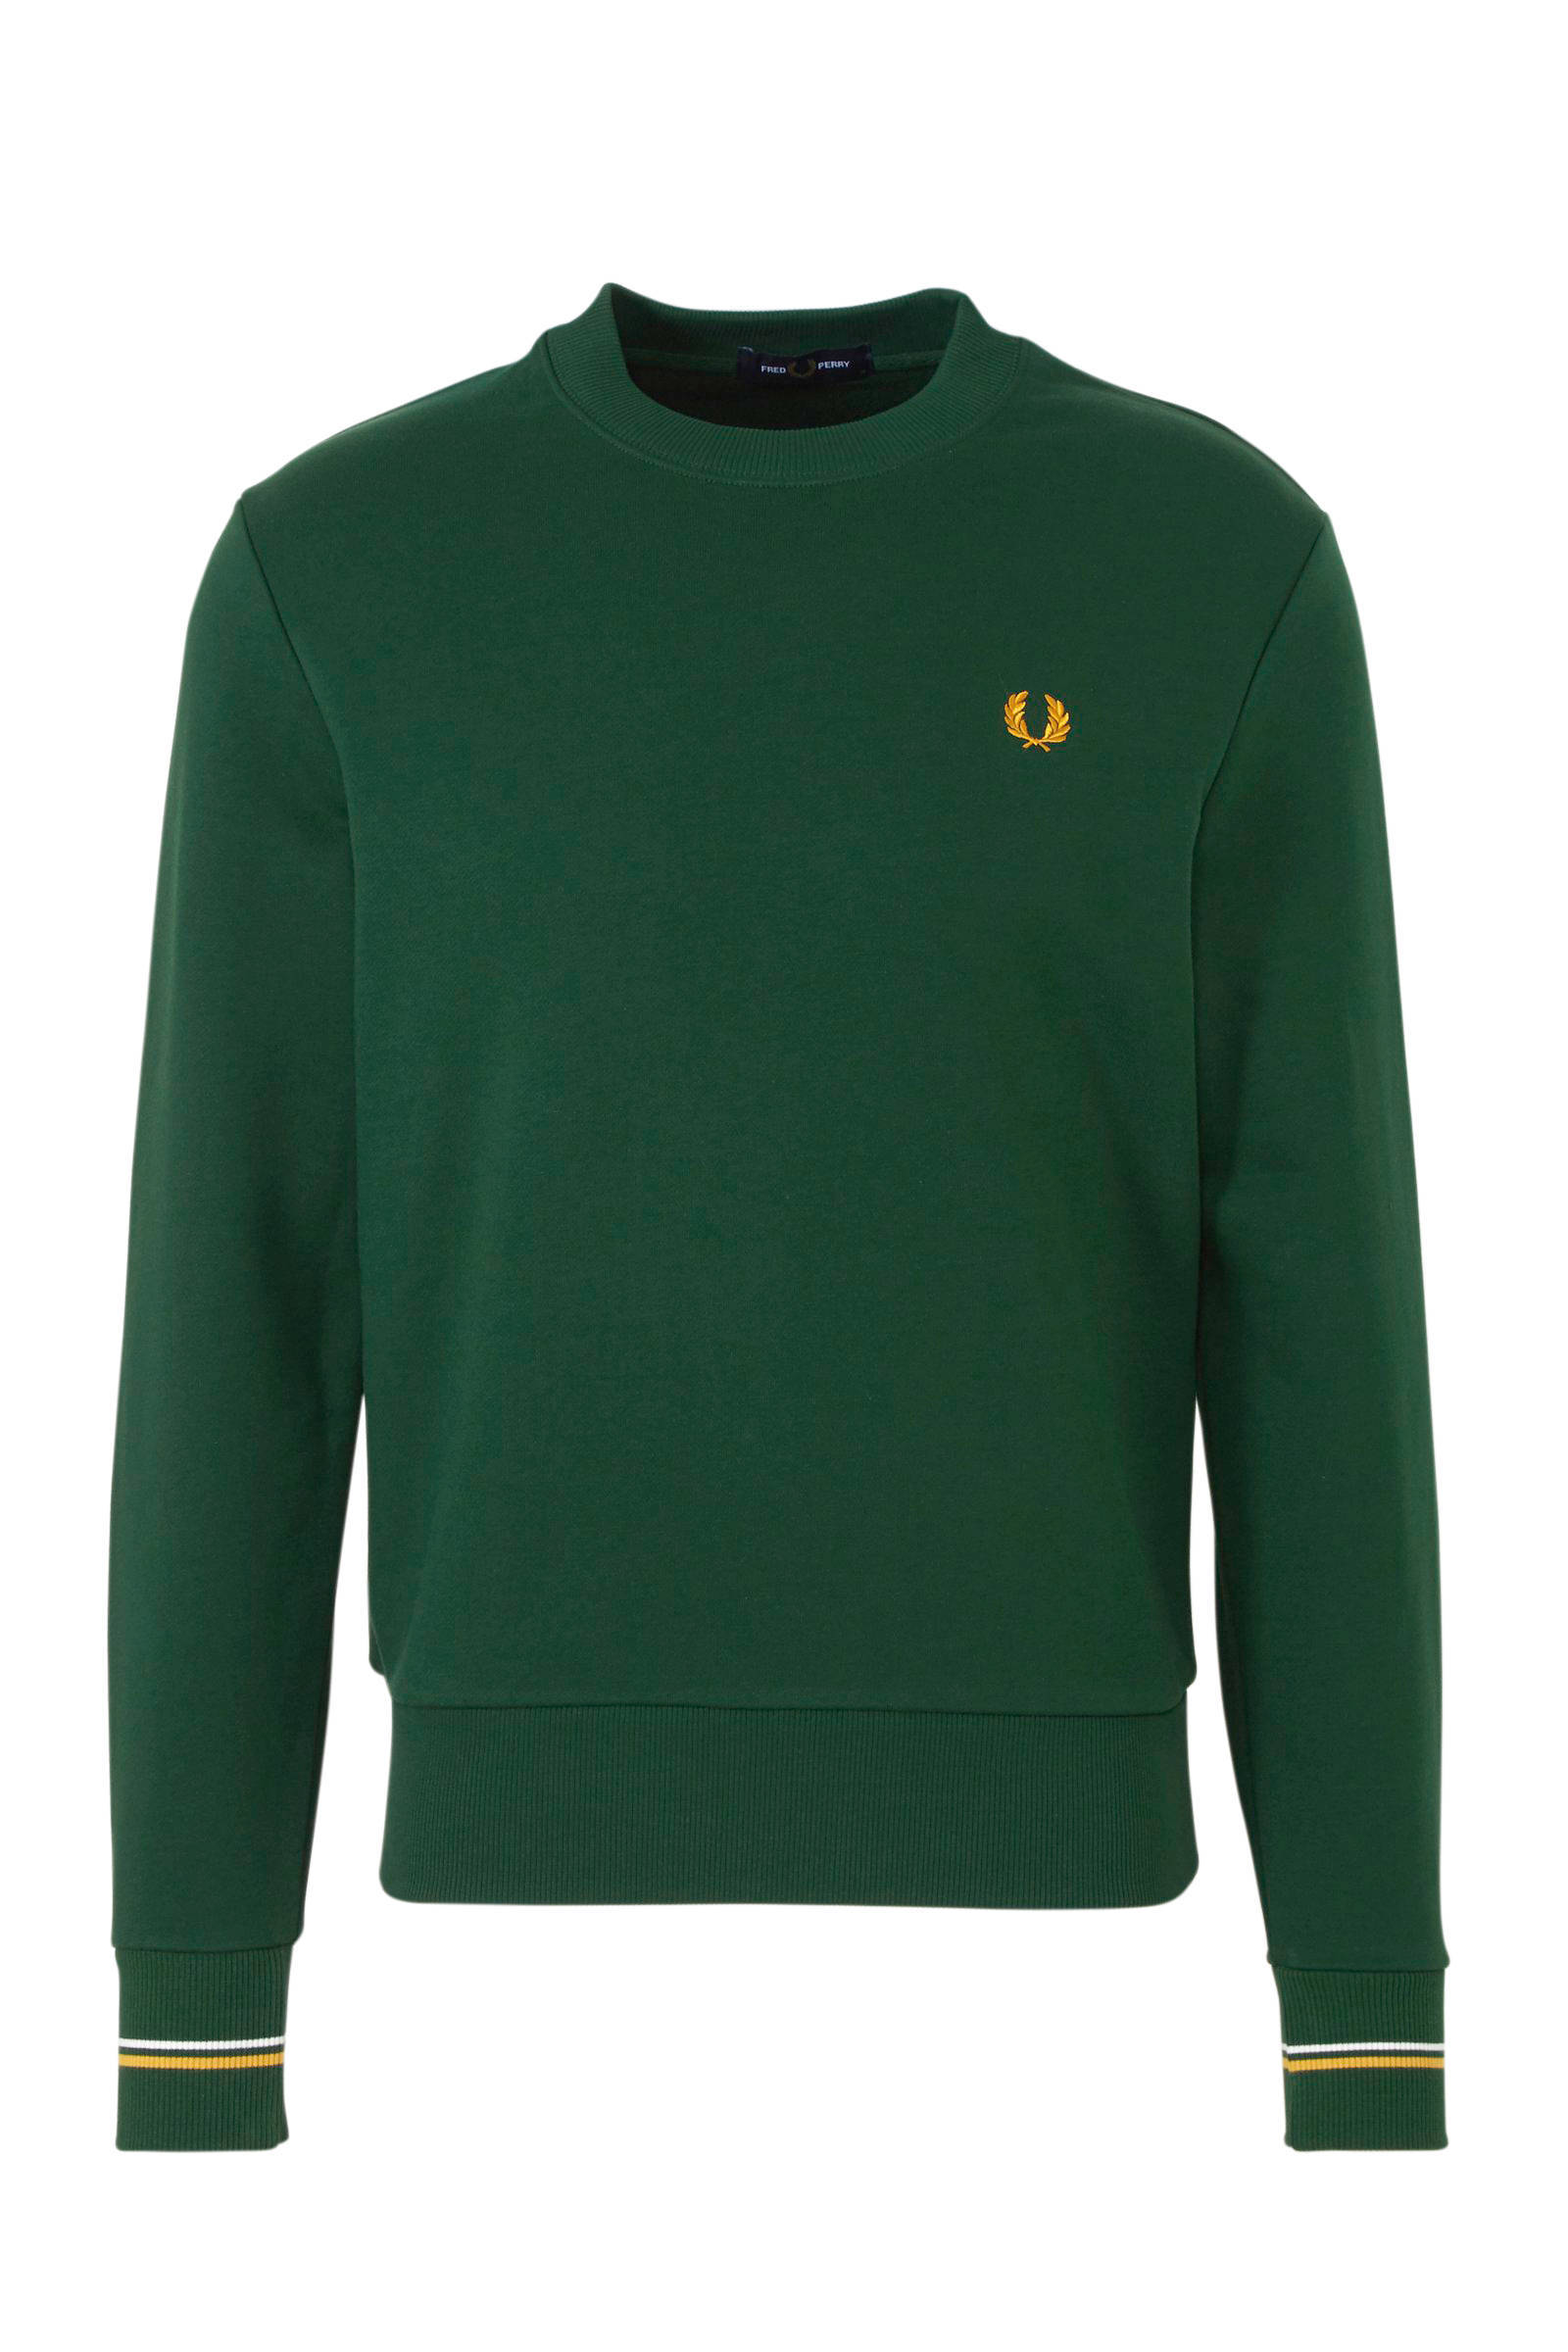 Trui Fred Perry ronde hals groen